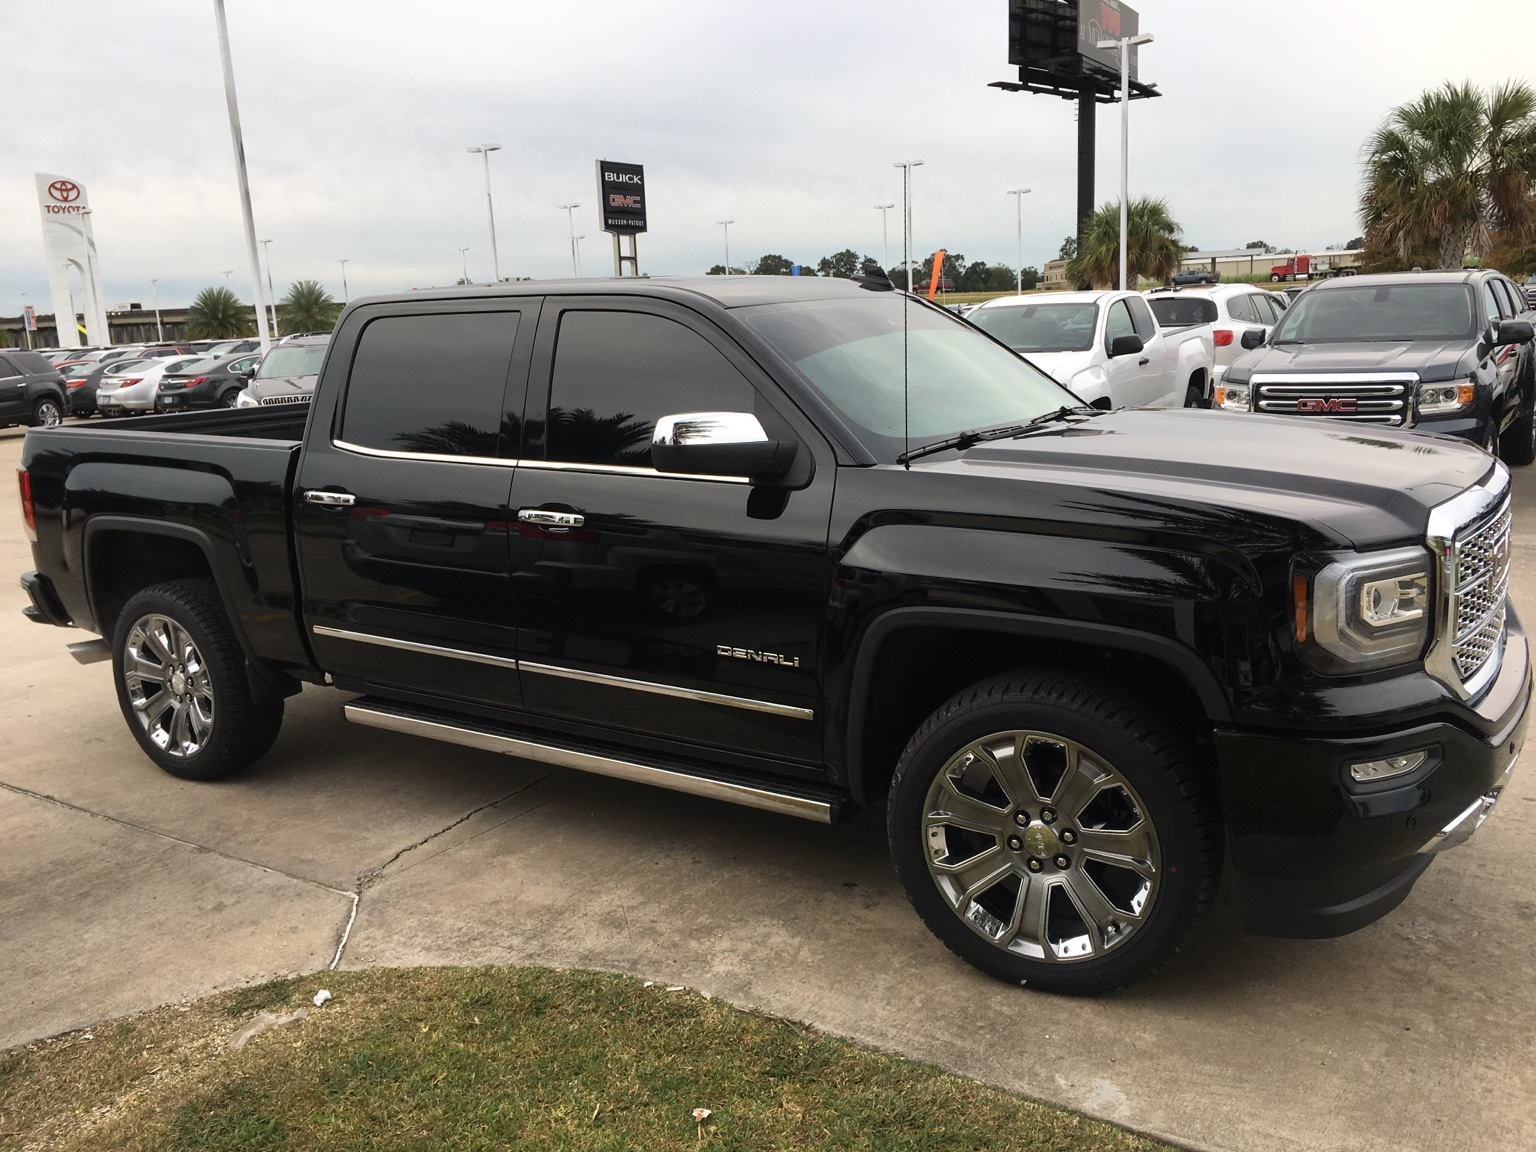 2017 gmc sierra denali ultimate not a build but will end up being a build build chevy truck. Black Bedroom Furniture Sets. Home Design Ideas